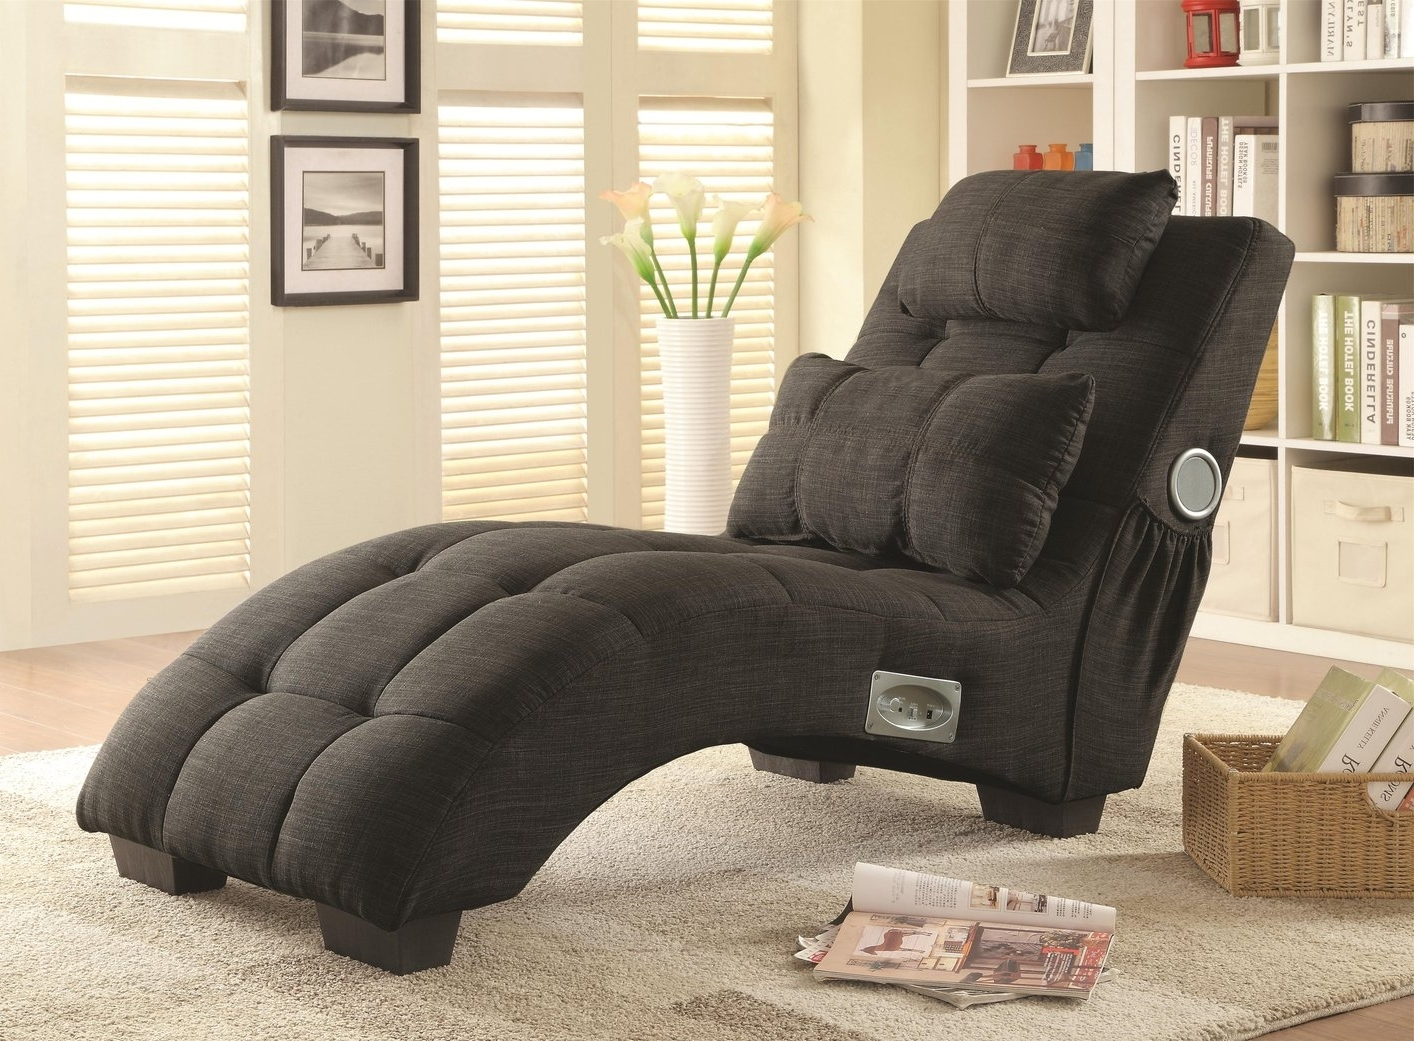 Fabric Chaise Lounges With Regard To 2018 Grey Fabric Chaise Lounge – Steal A Sofa Furniture Outlet Los (View 2 of 15)